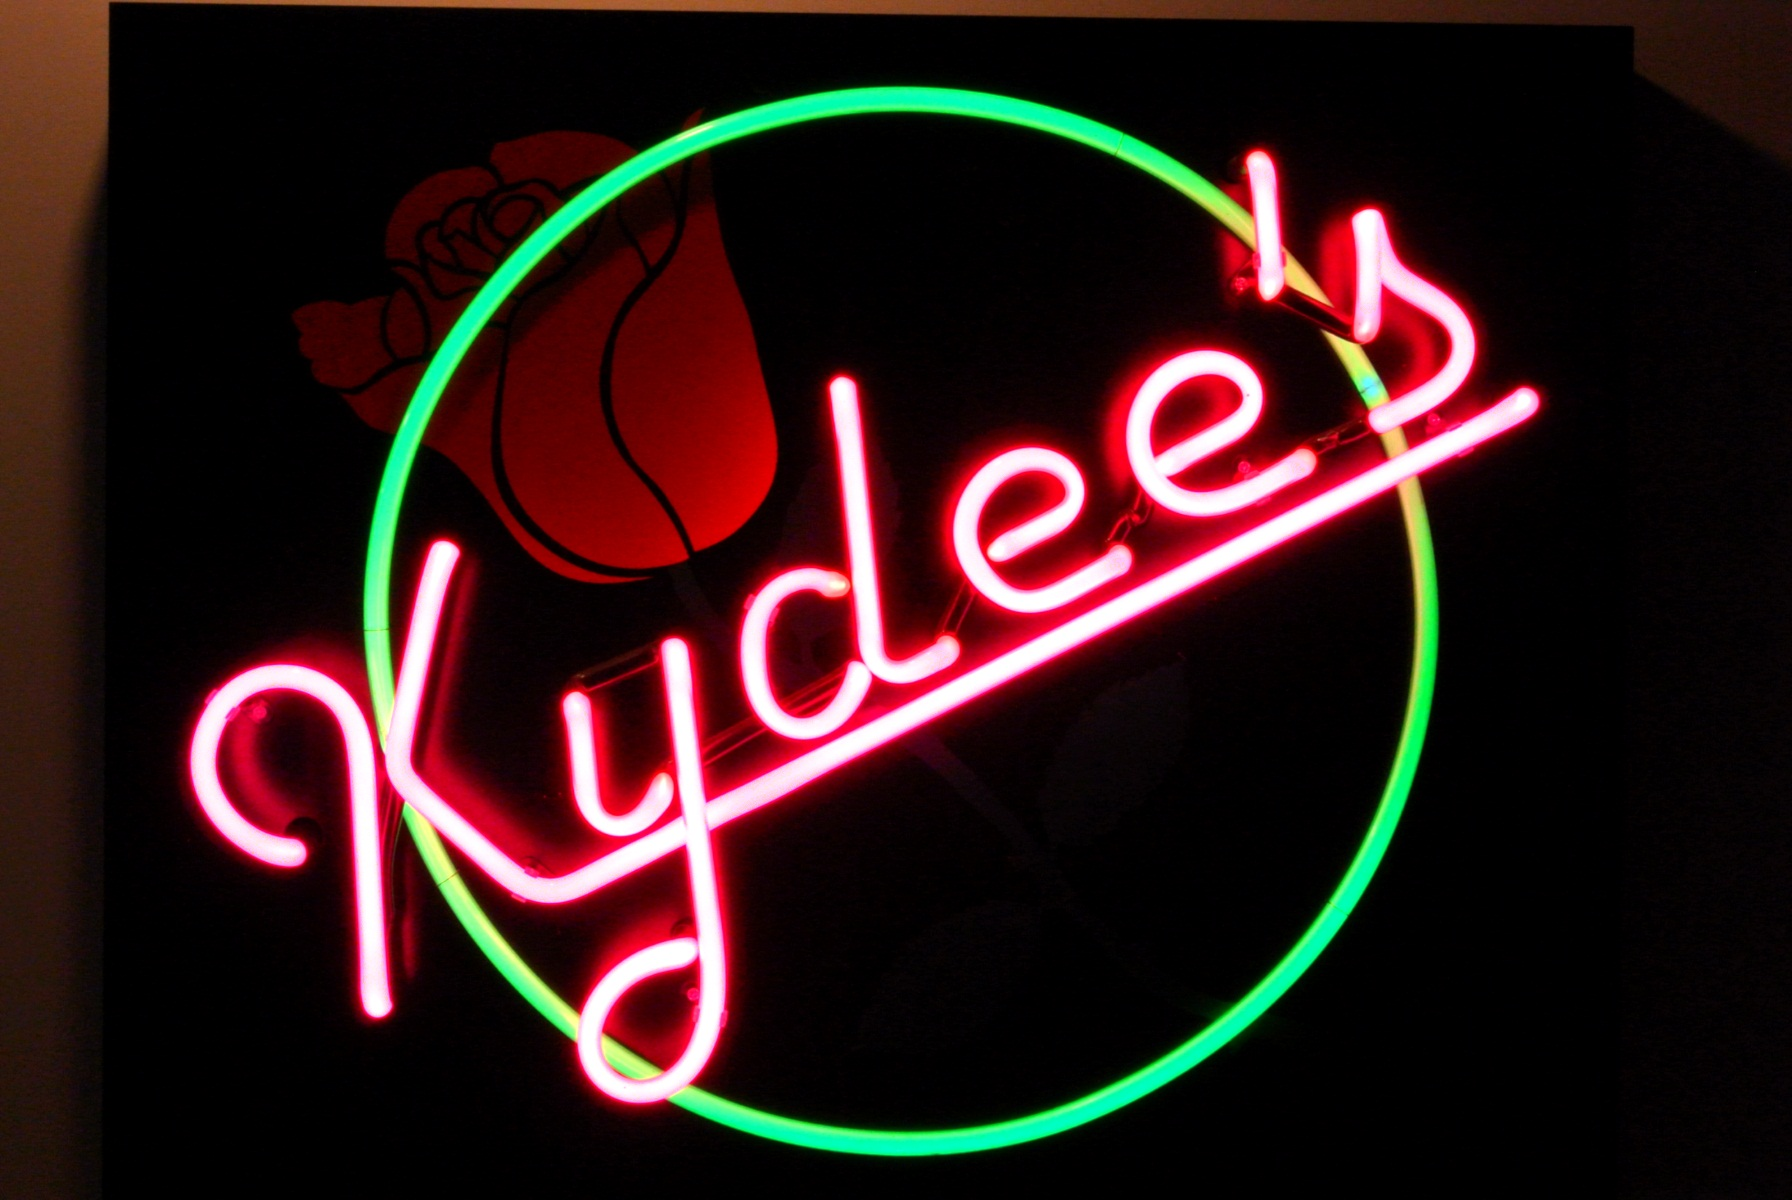 Kydee's Commercial Neon Sign.jpg